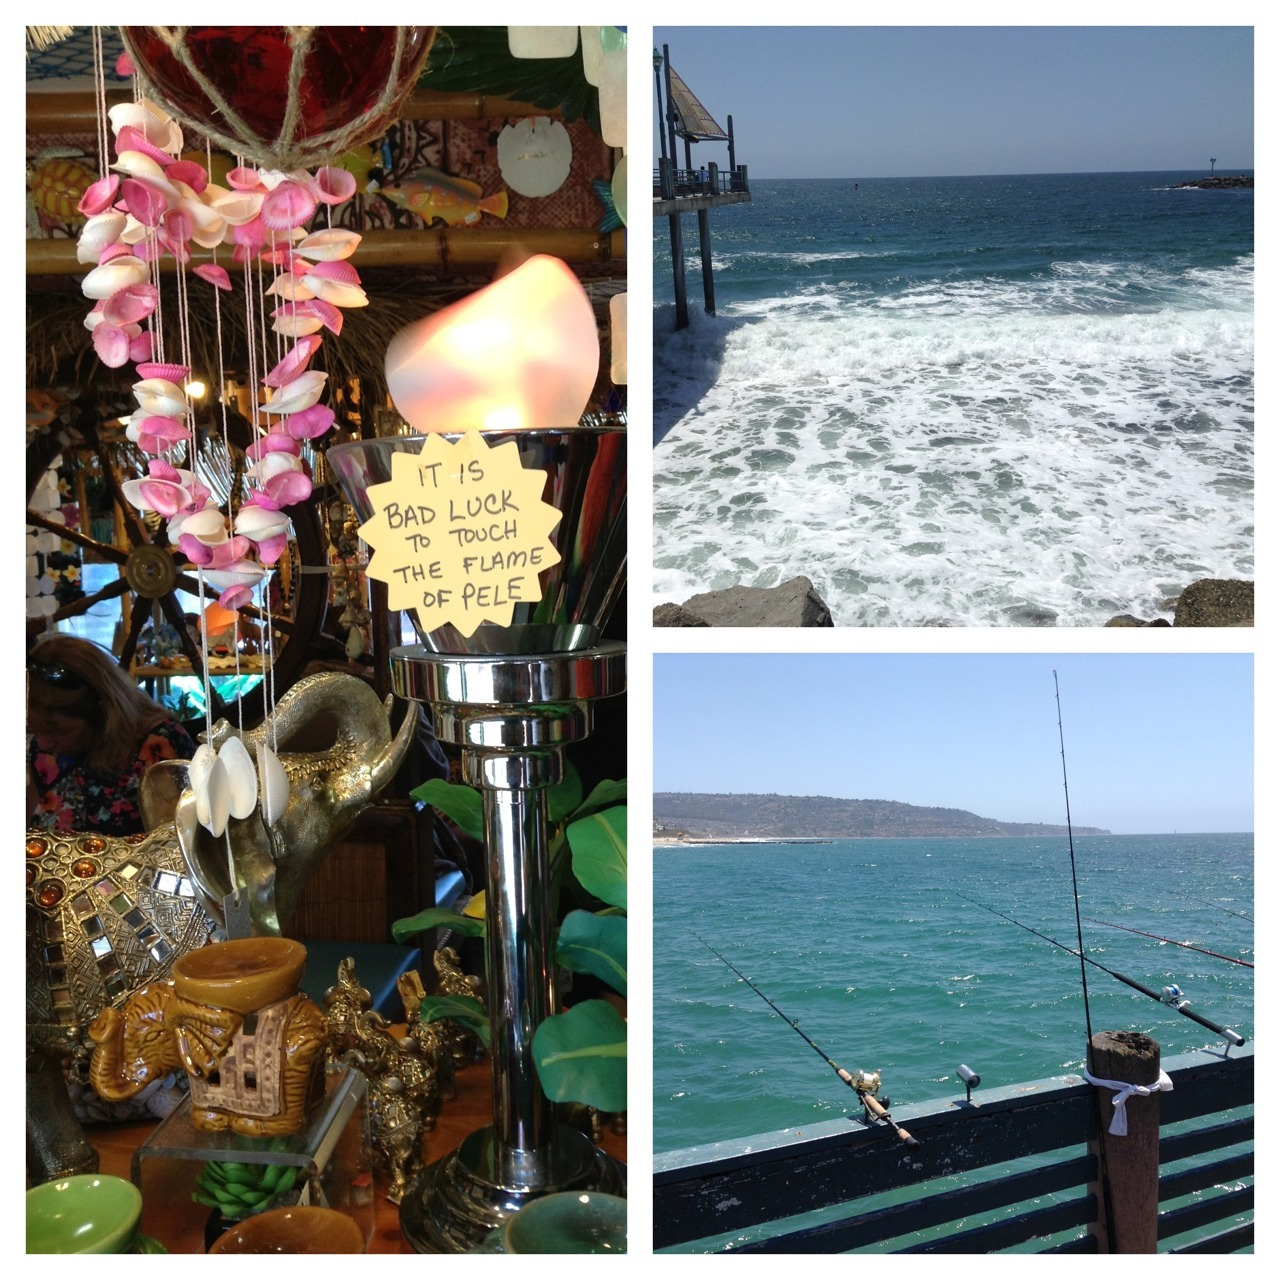 Part 3 of my day. Redondo Beach